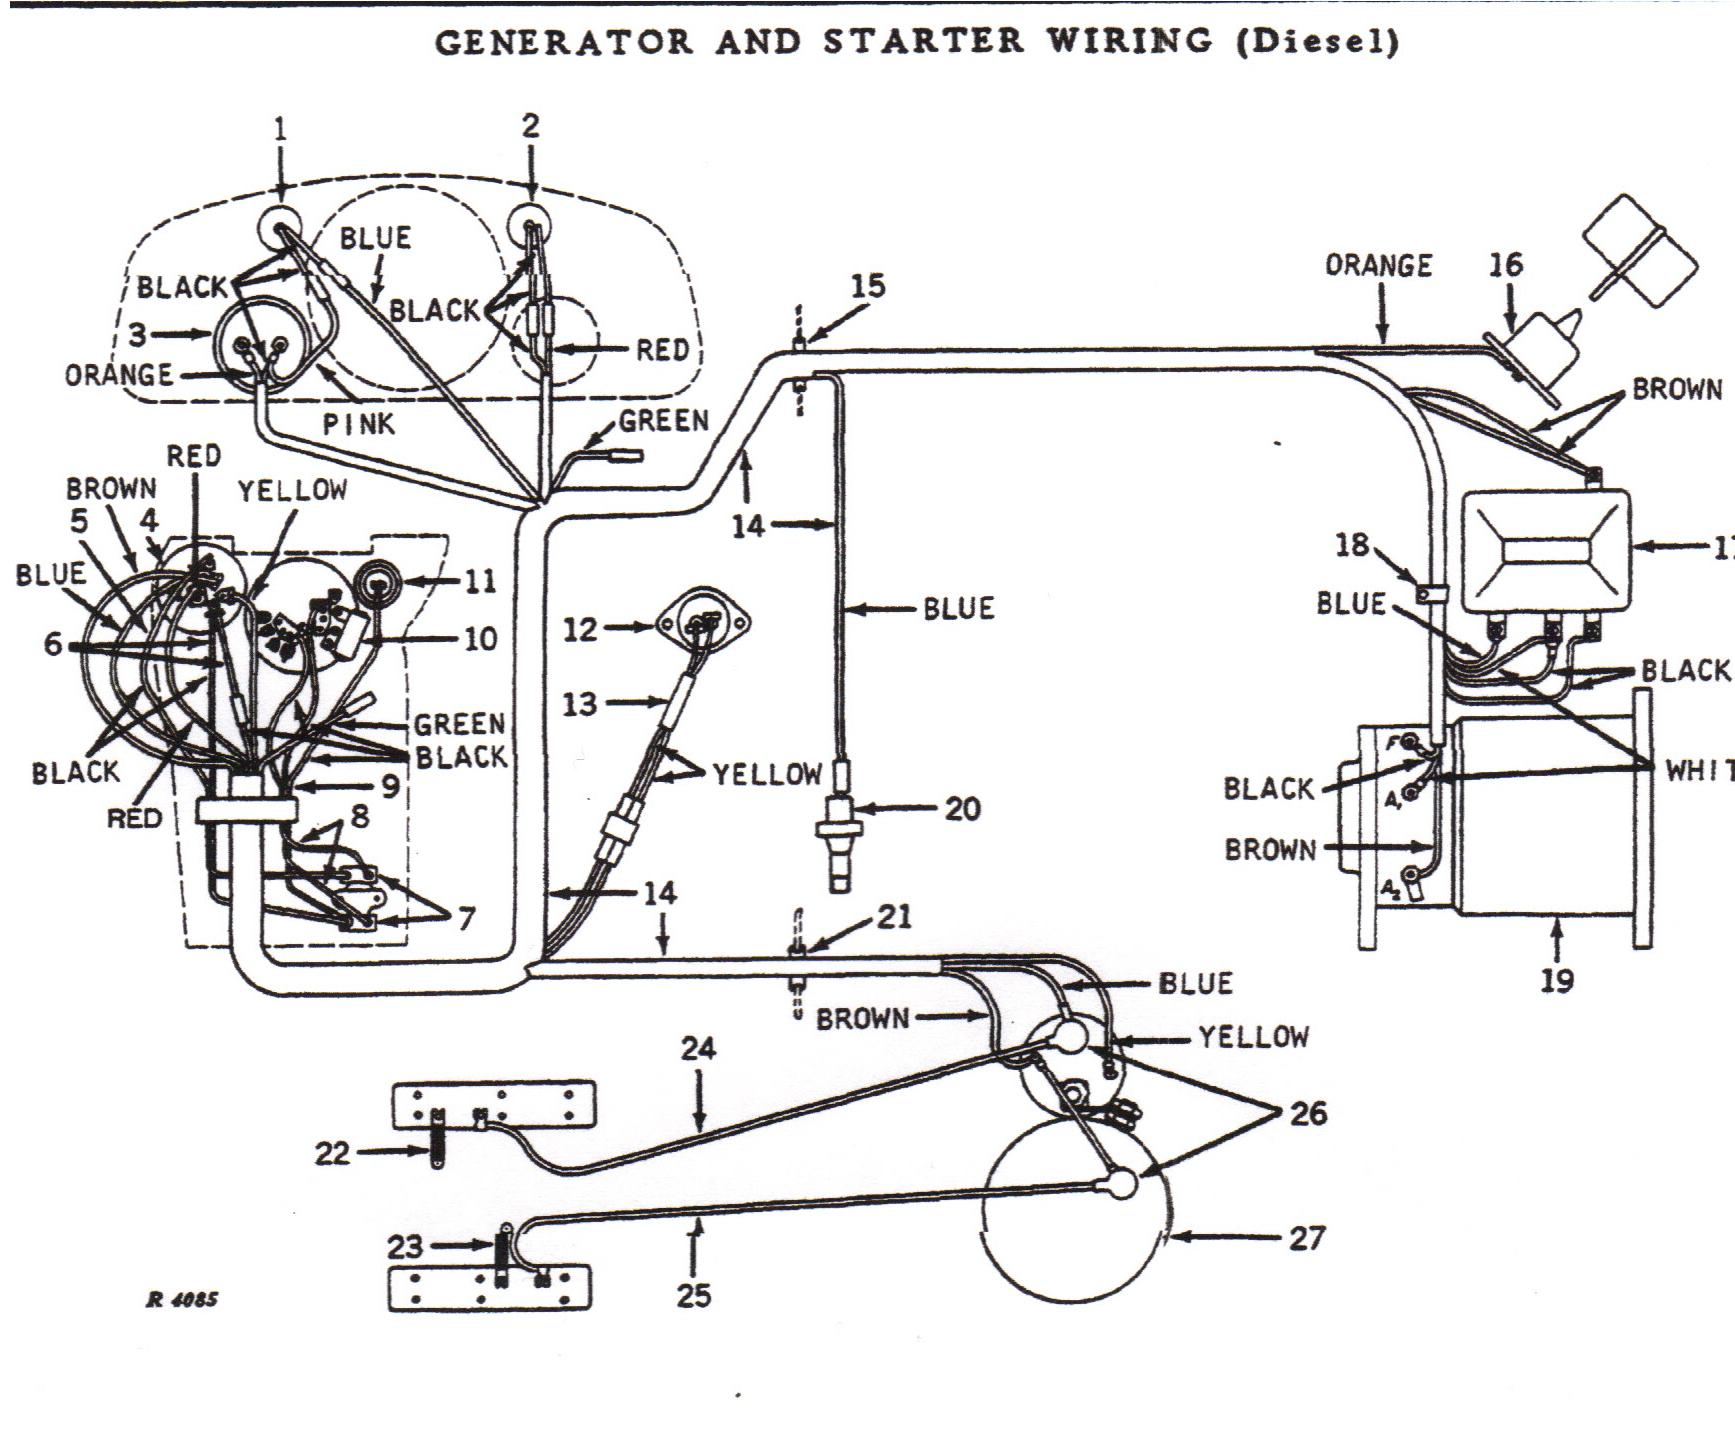 John Deere 4430 Wiring Diagram from static-resources.imageservice.cloud